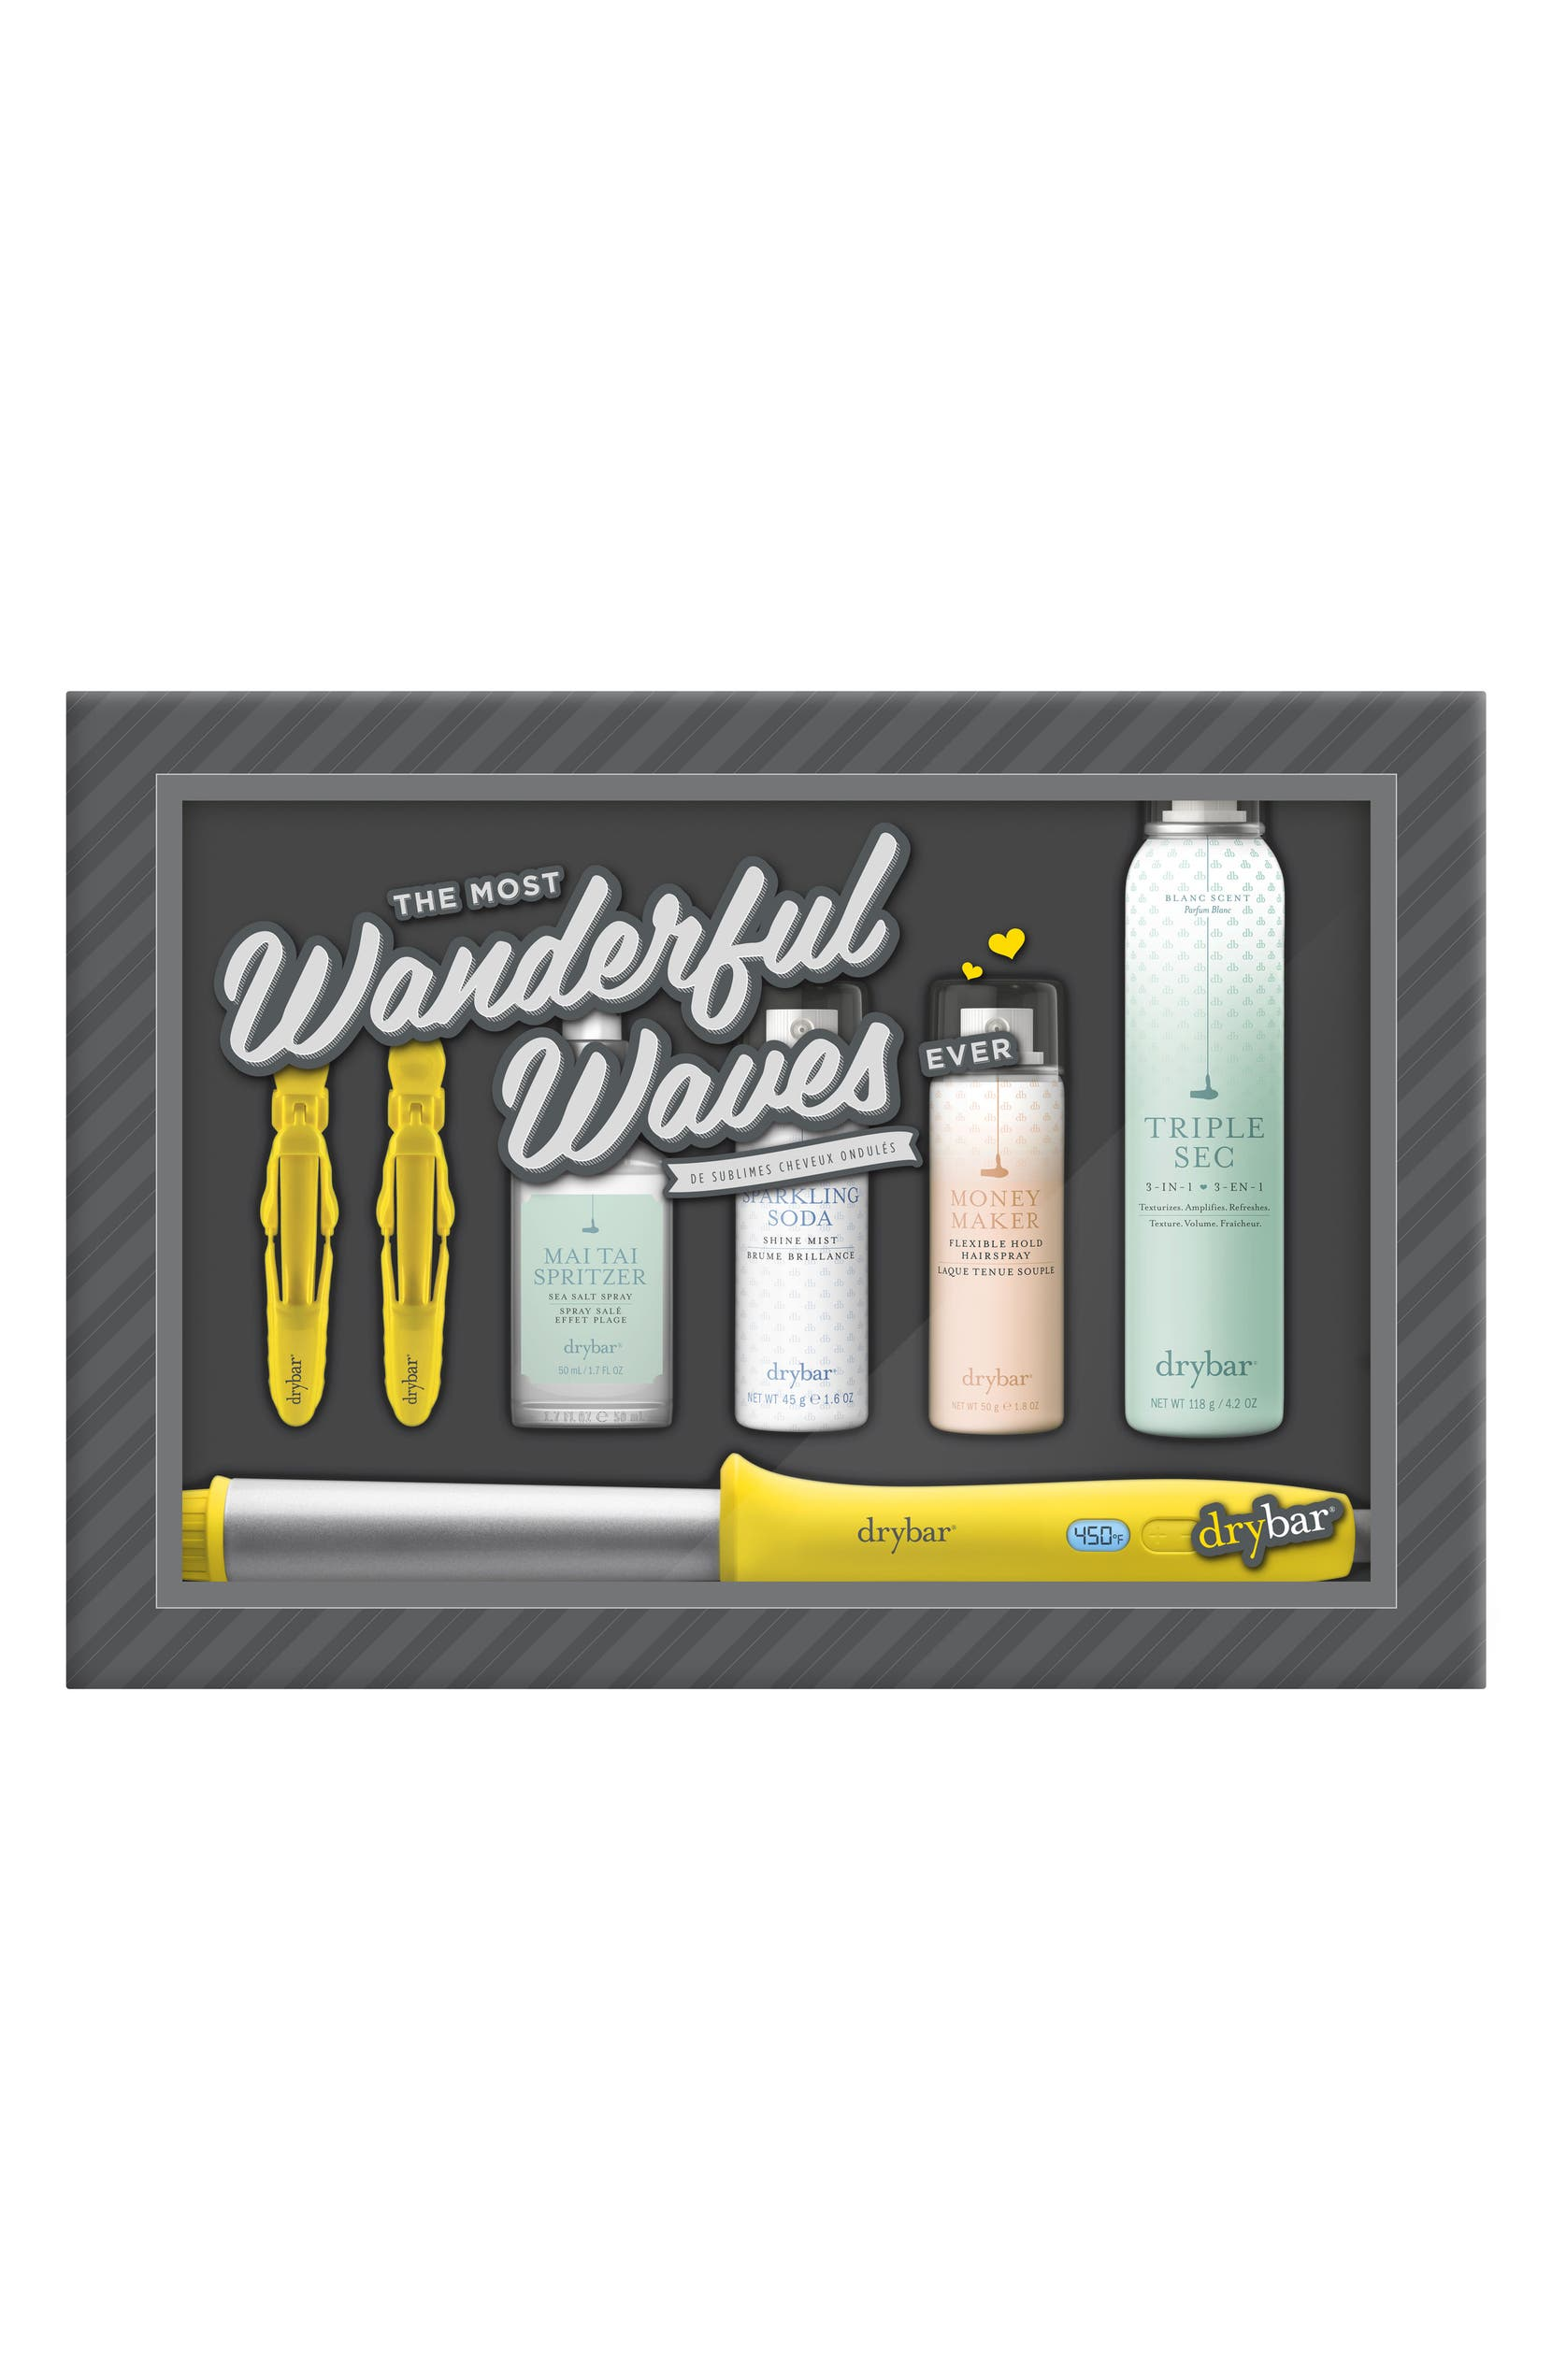 bf4dcf3f8c Drybar The Most Wanderful Waves Set ($240 Value)   Nordstrom